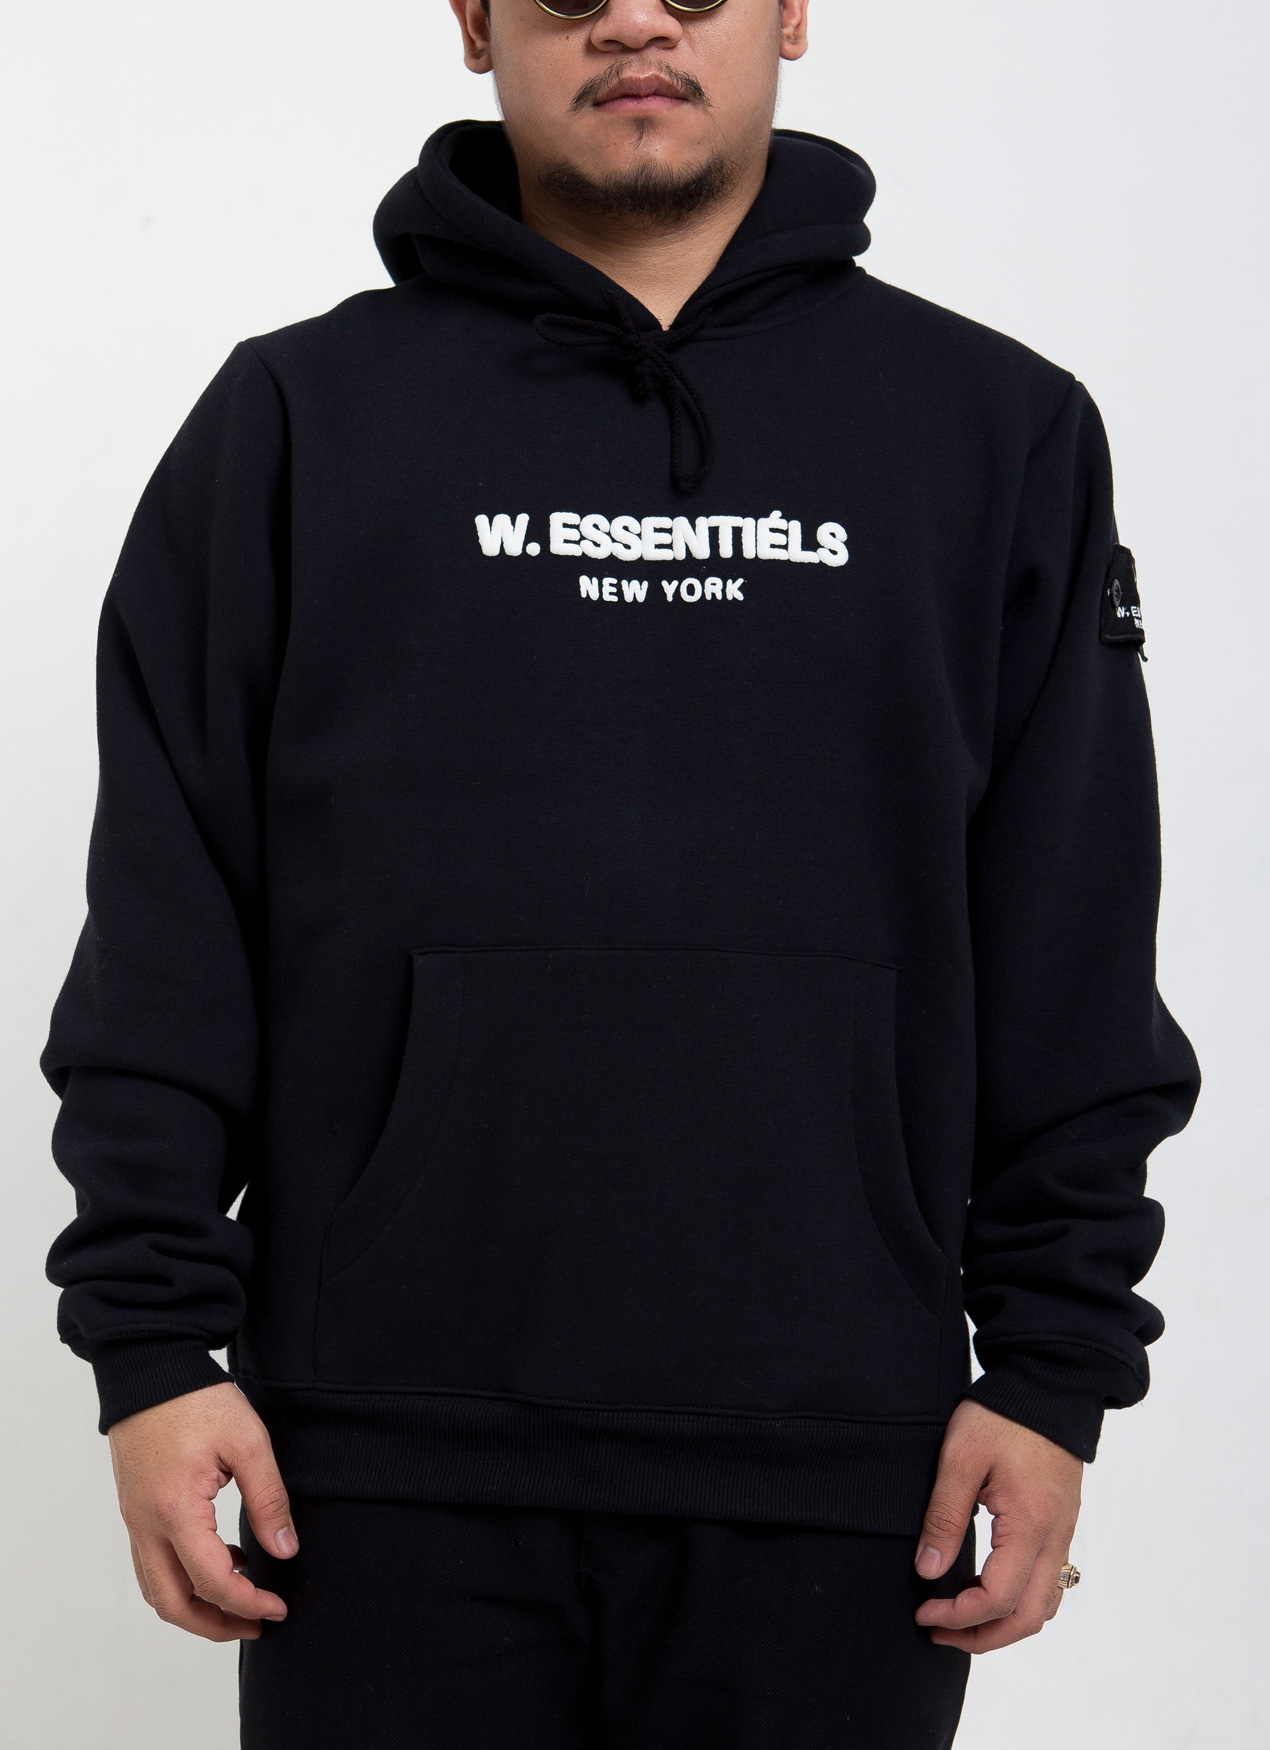 5bf6bb0d9 Buy Original W.Essentiels Noir Black Ecume Oversized Hoodie at ...